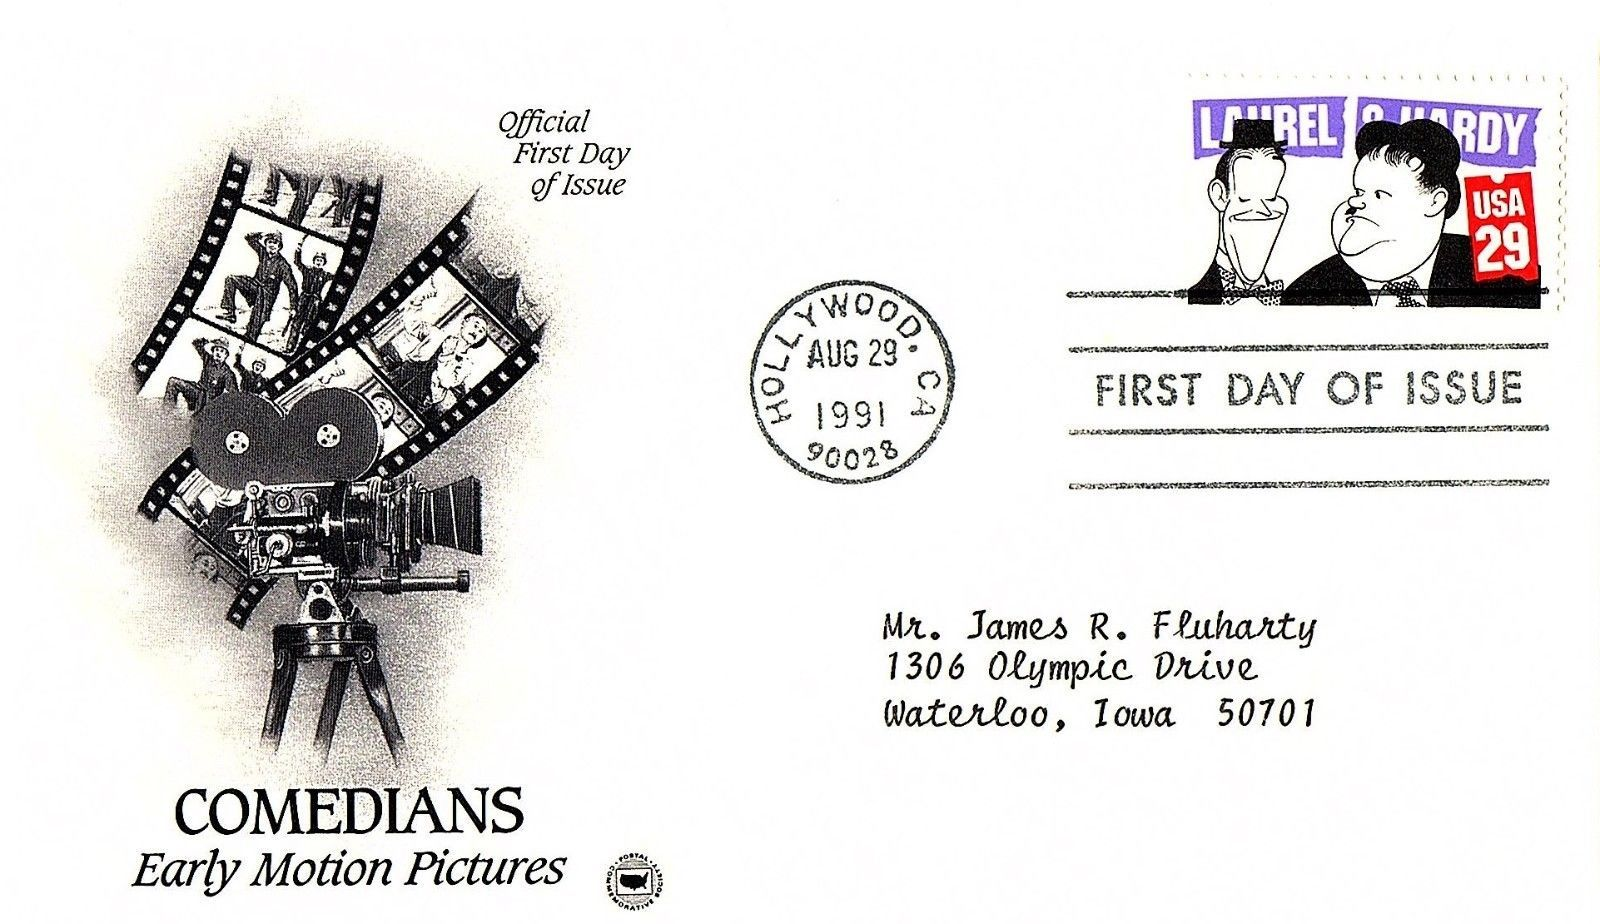 August 29, 1991 First Day of Issue, Postal Society Cover Comedians, Pictures #3